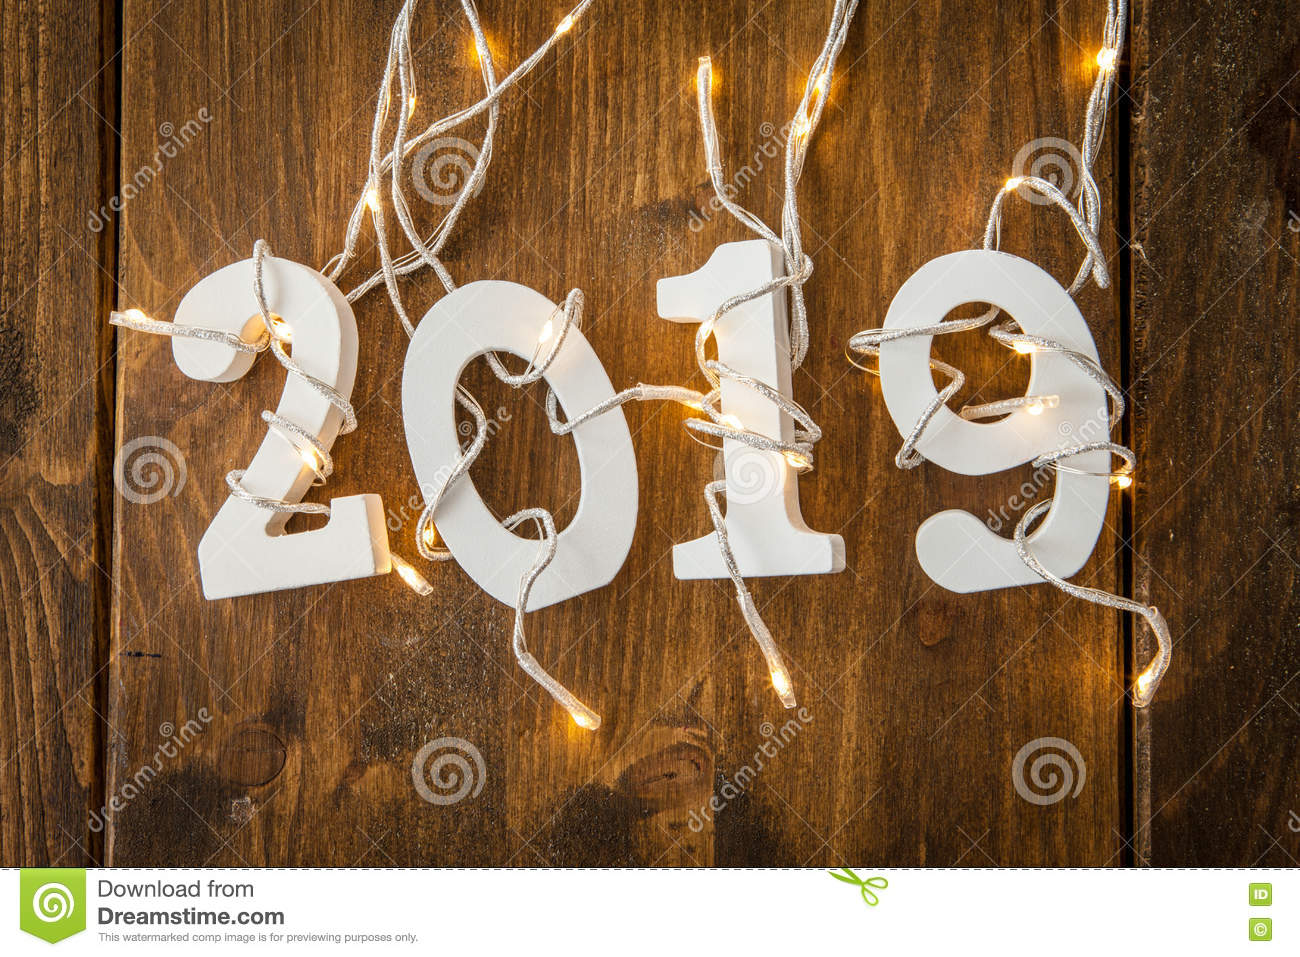 2019 With Christmas Lights Stock Photo Image Of Party 79979214